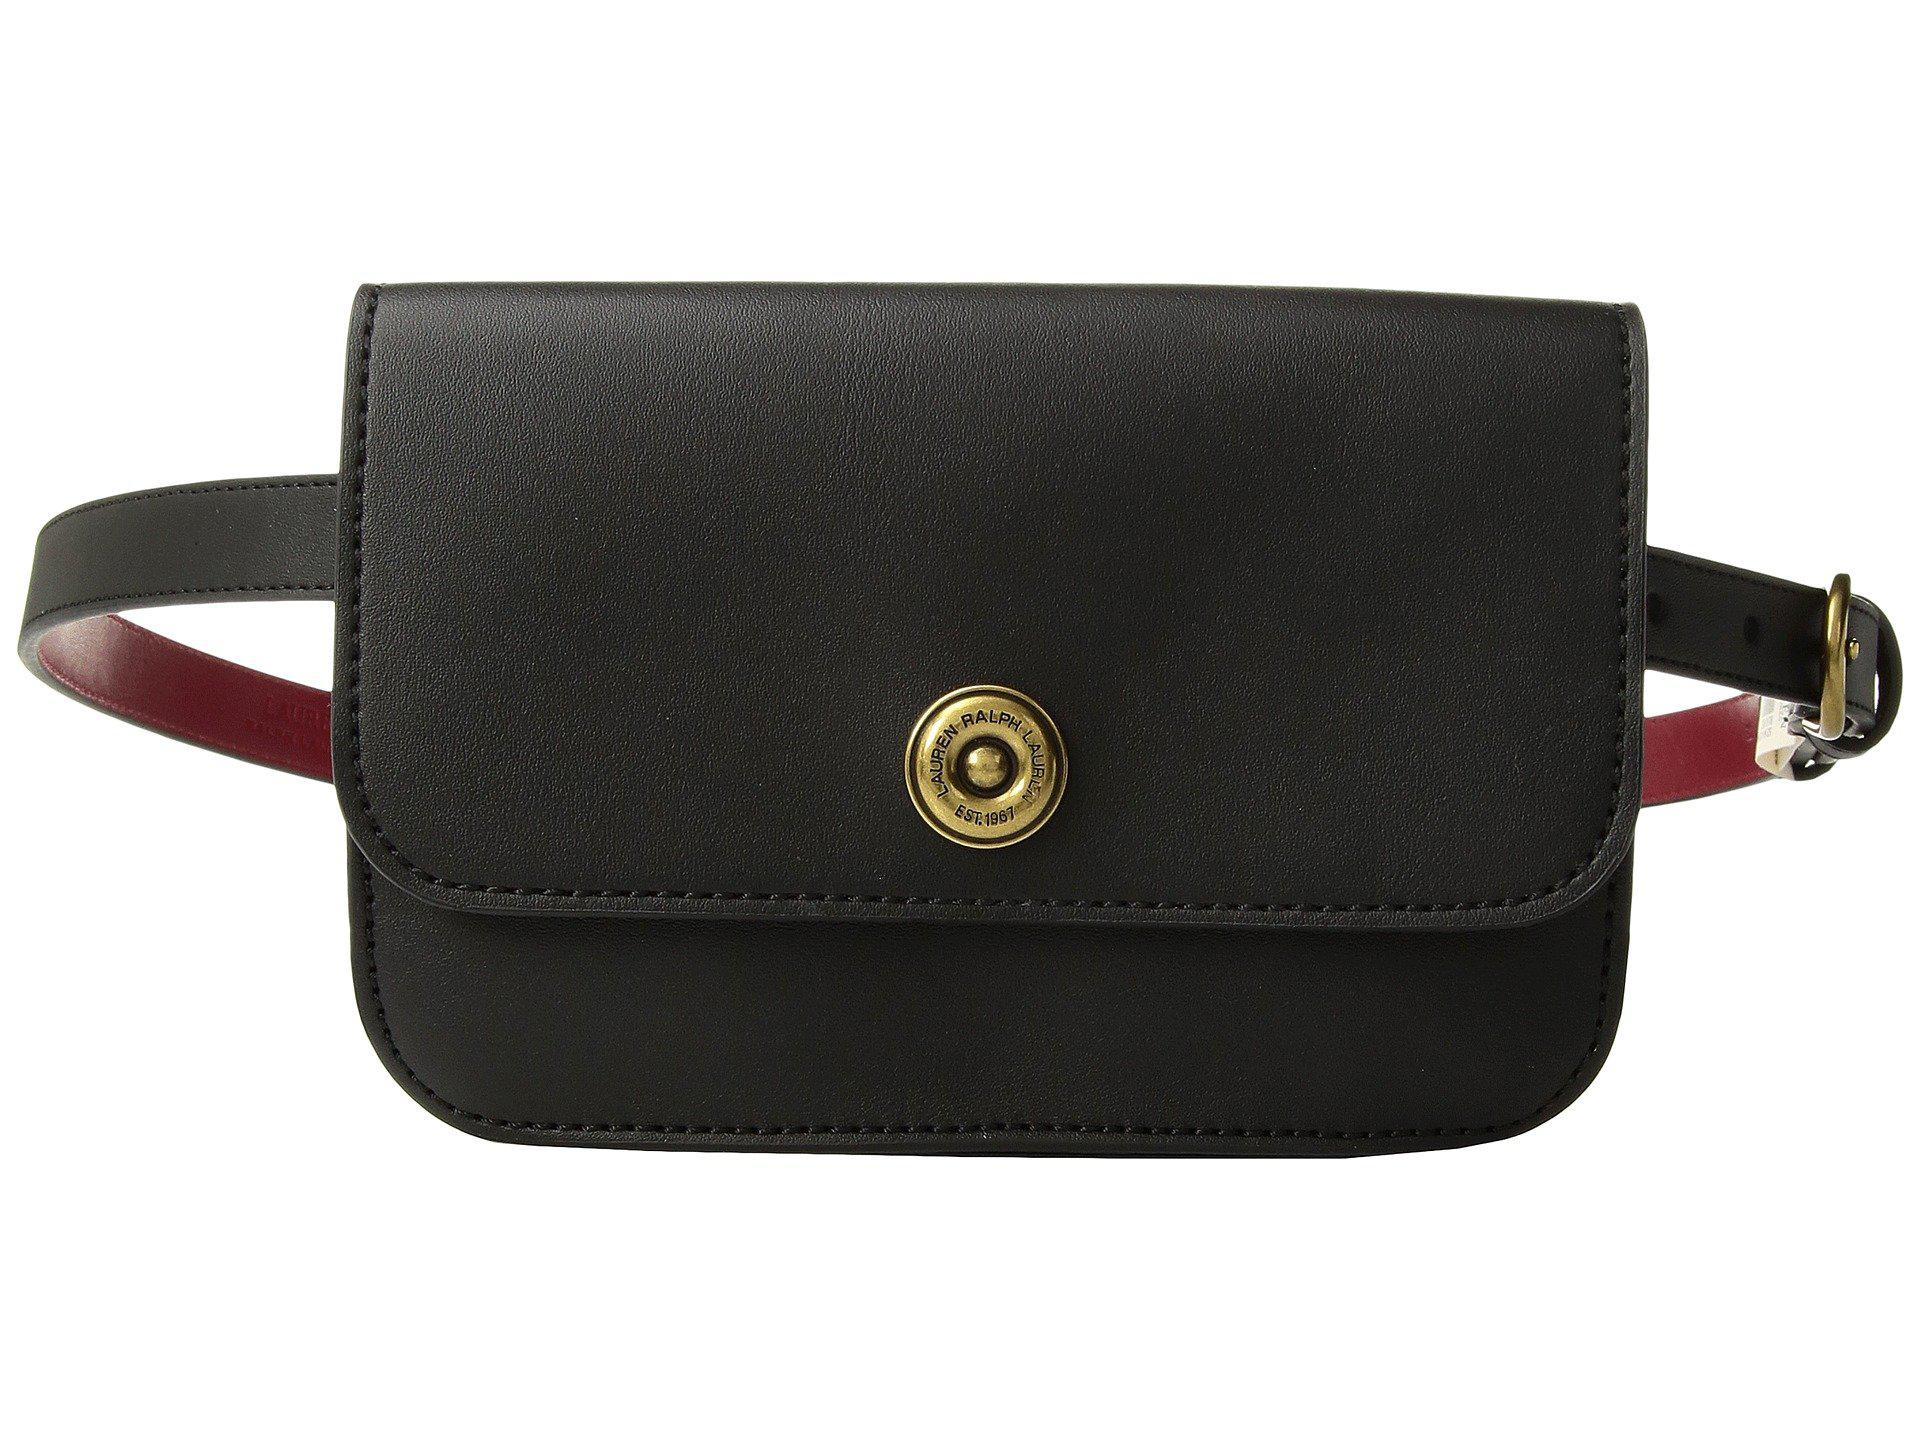 Lyst - Lauren by Ralph Lauren Millbrook Belt Bag in Black 4597f7e0246